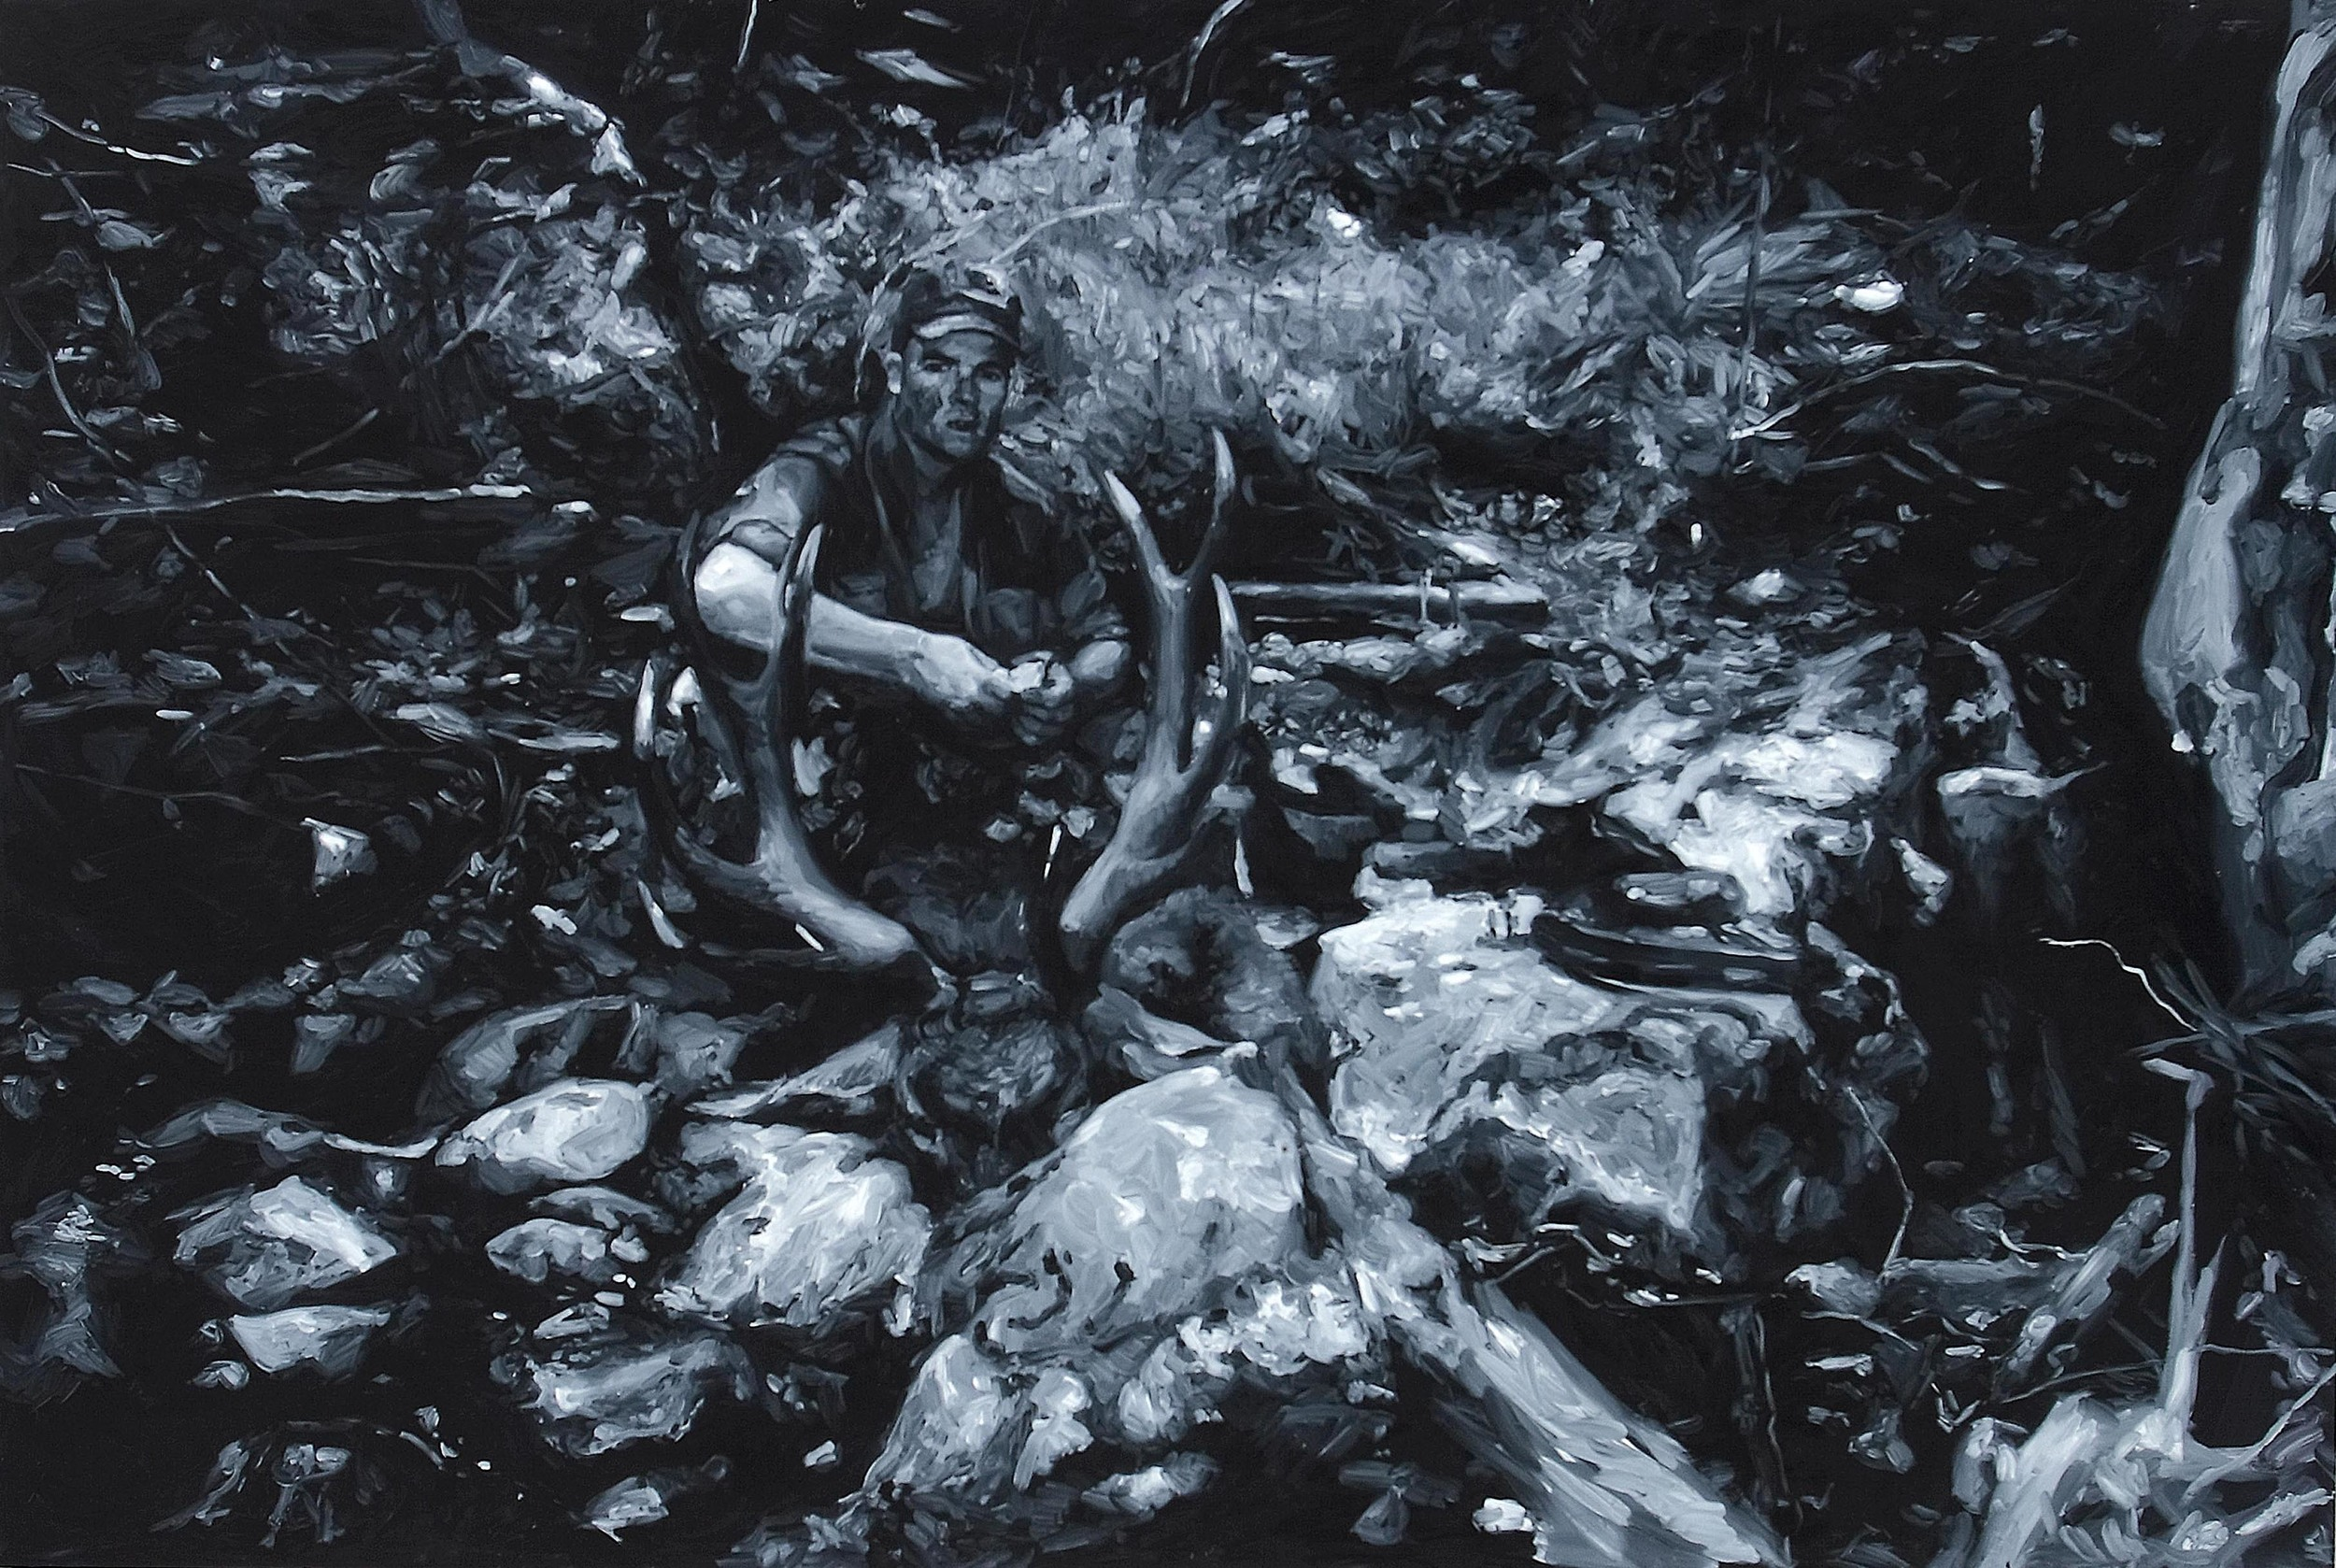 Dear Hunter (Jason), oil on board, 120 x 180 cm, 2009. Photography by Carl Warner. Private collection.